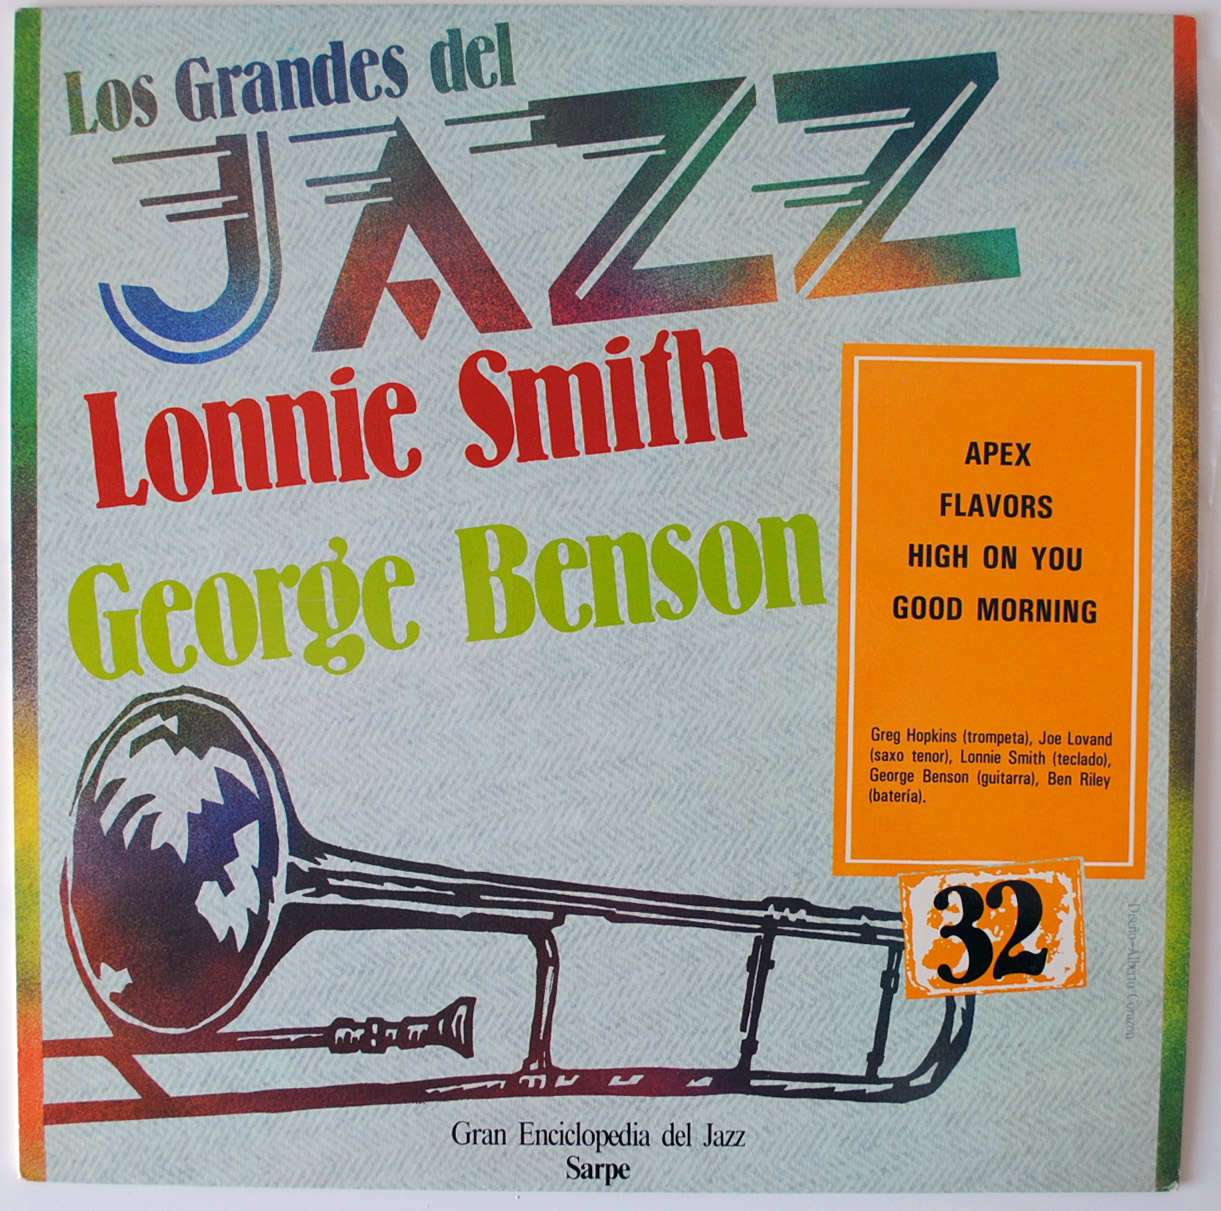 Lonnie Smith afro-desia (grandes del jazz #32)